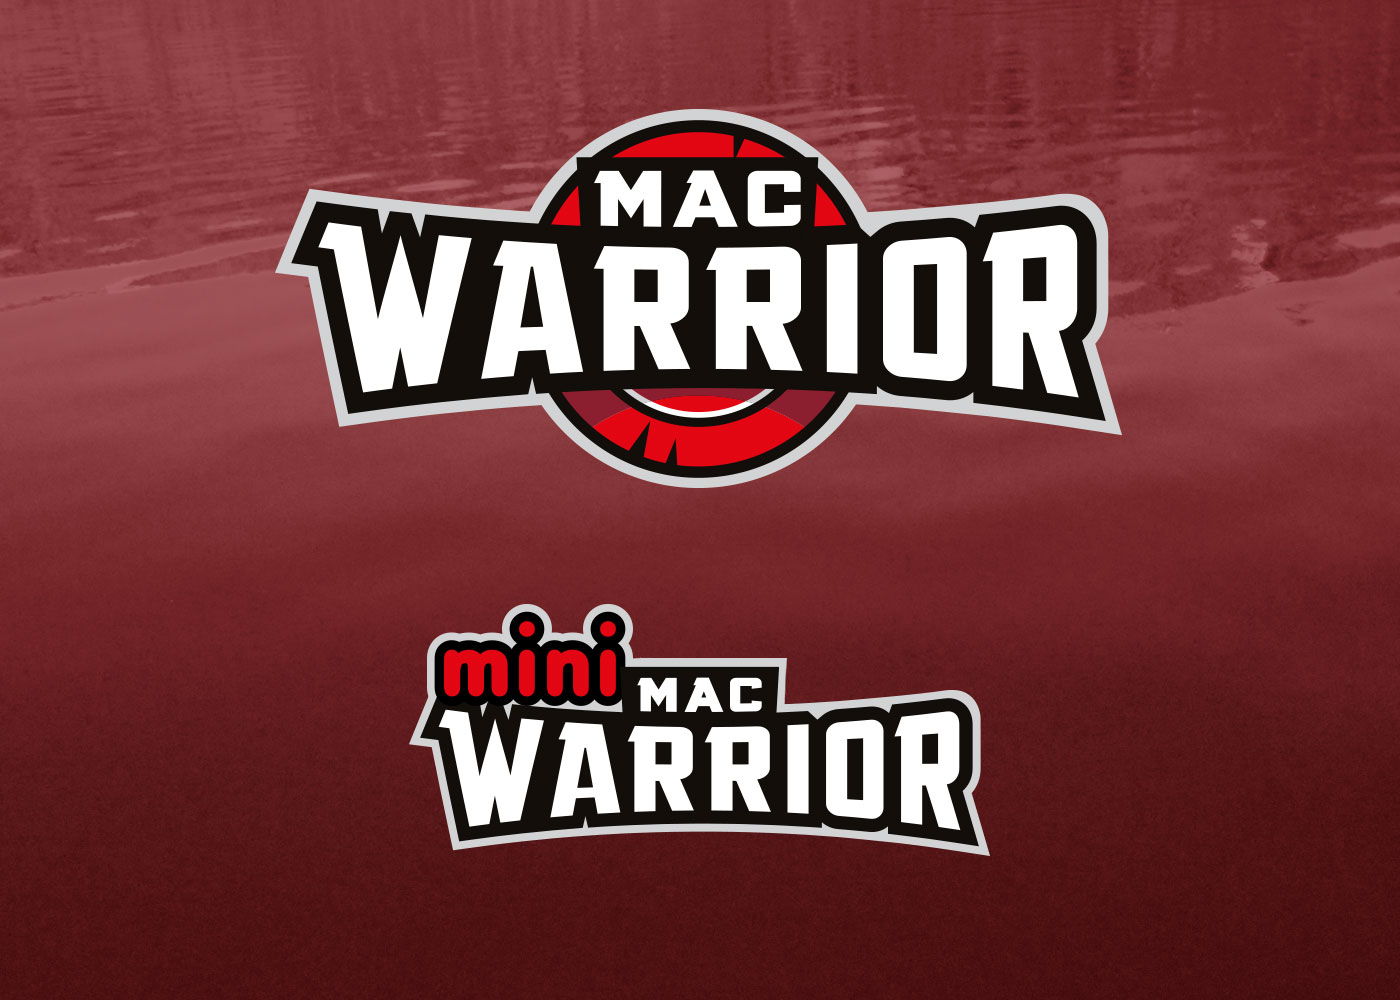 MAC-WARRIOR_WebPage_04